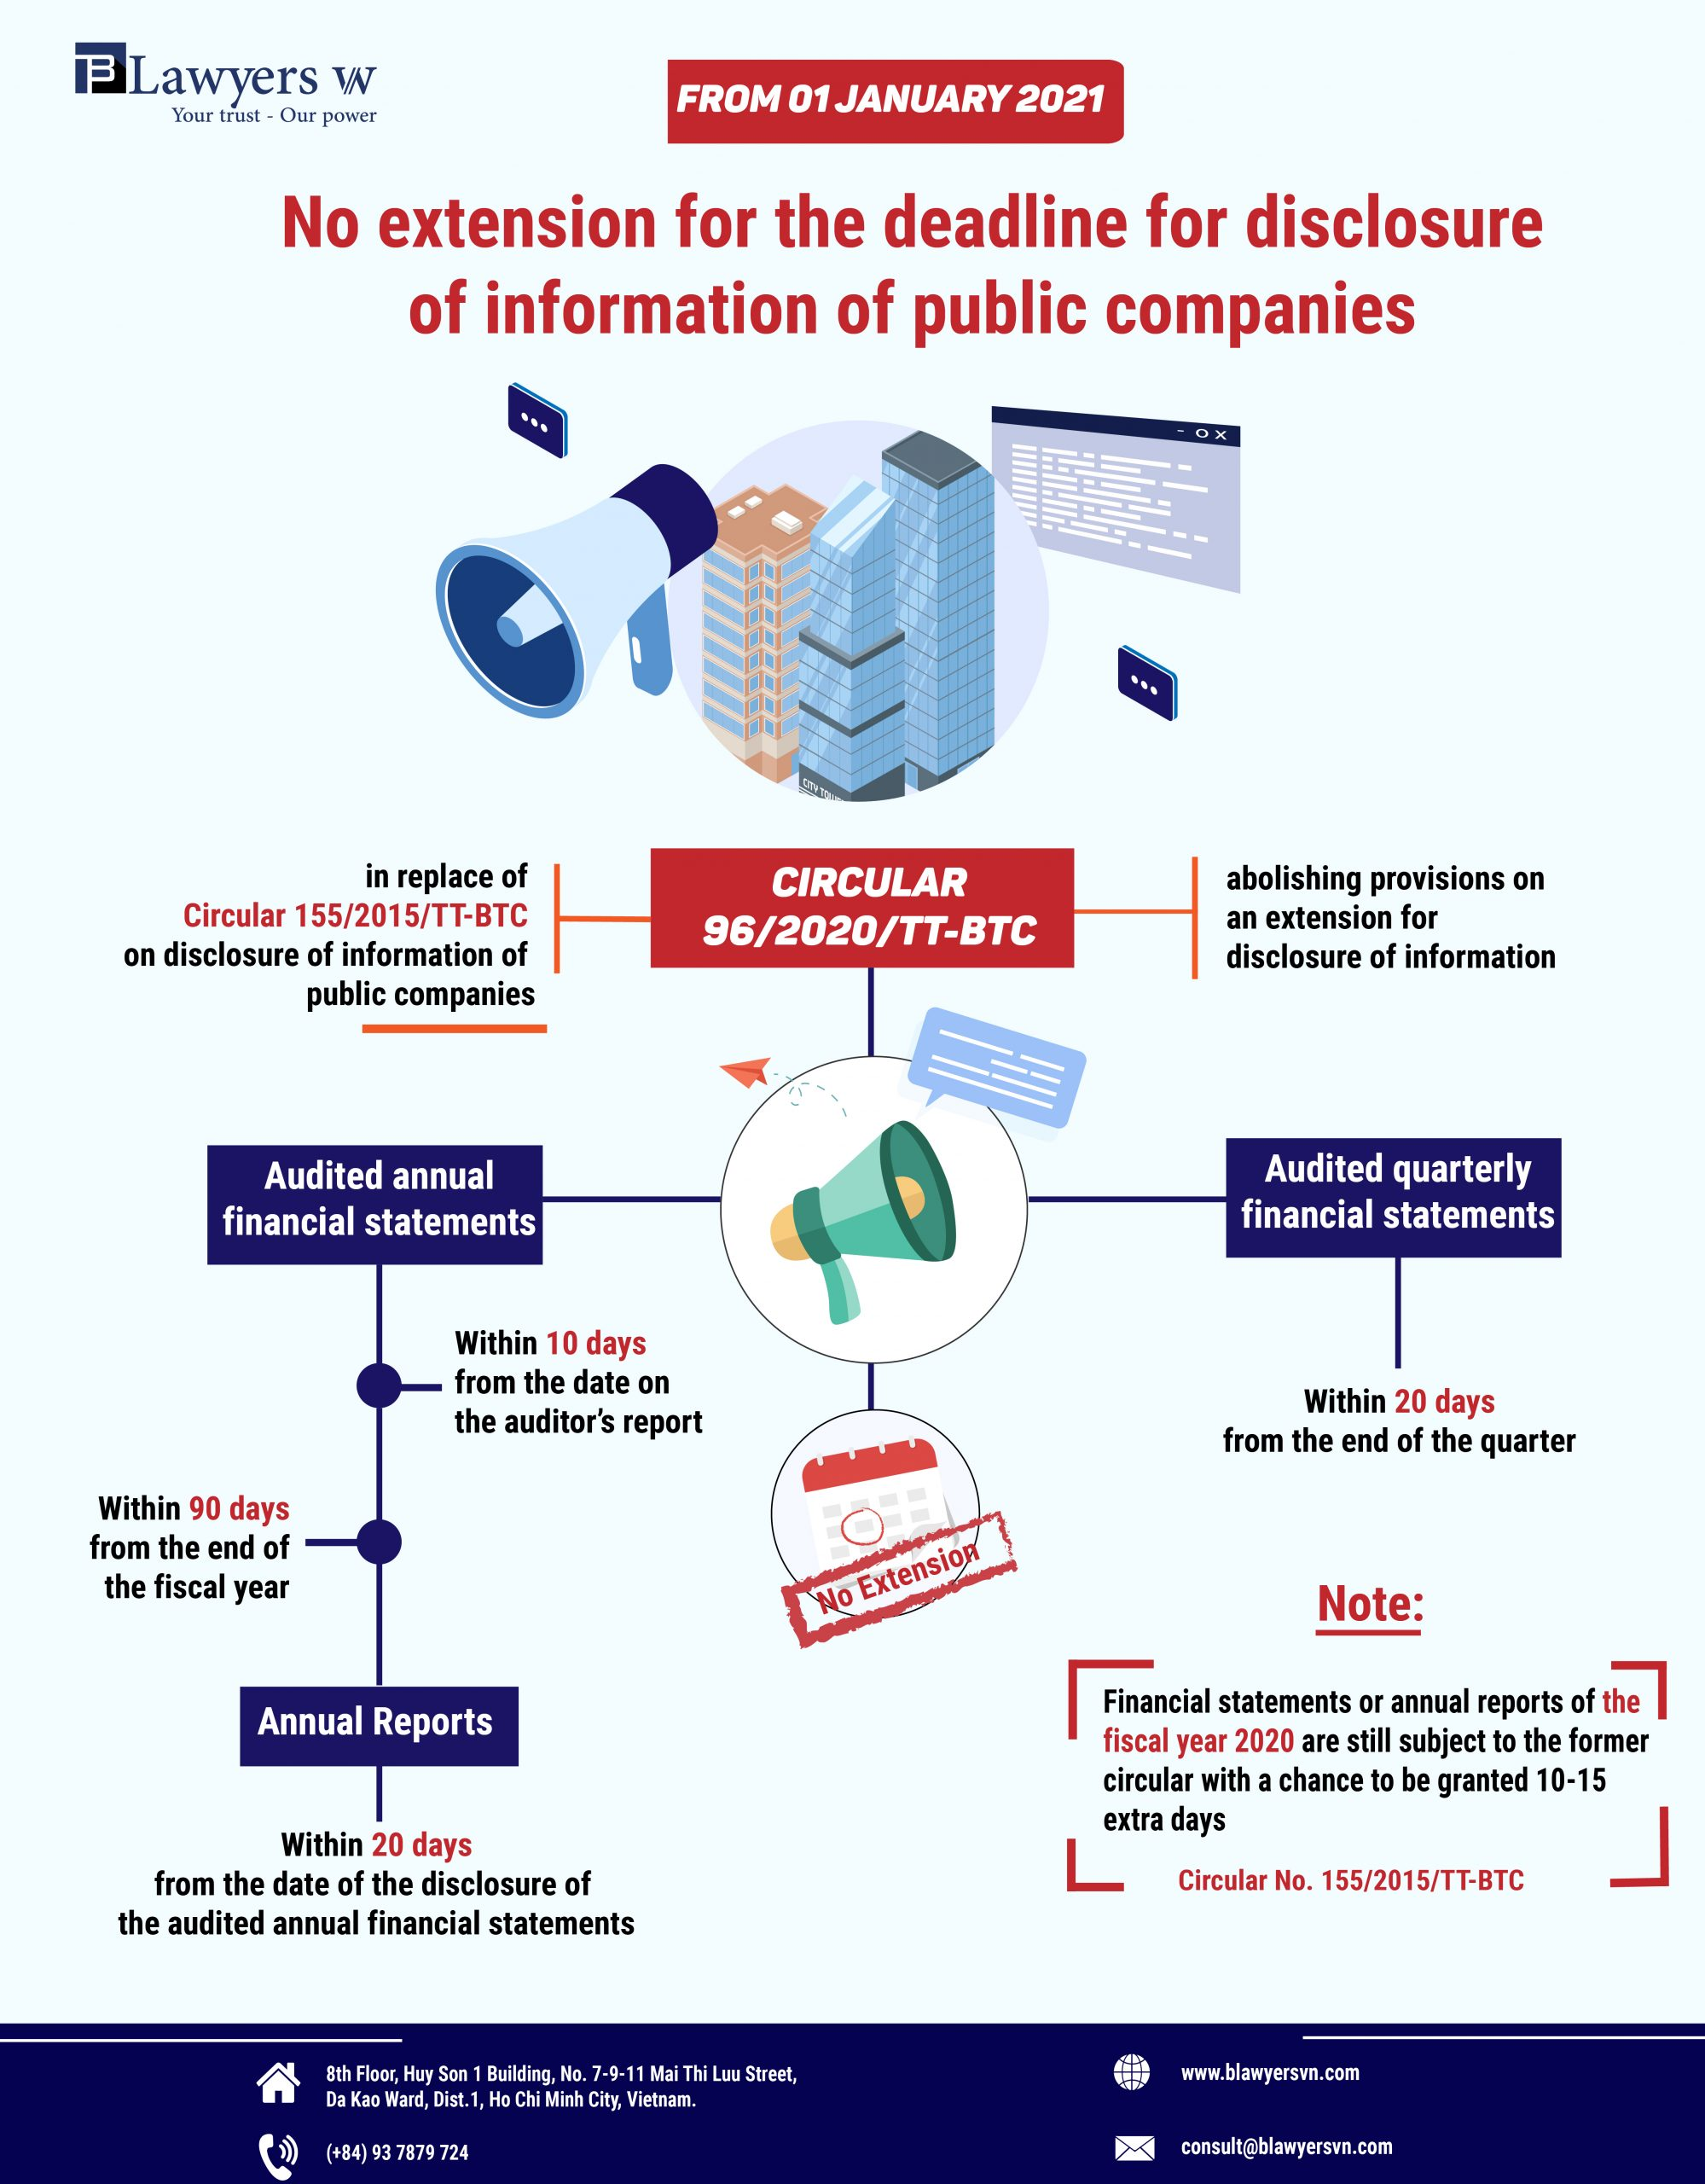 Disclosure information by public companies